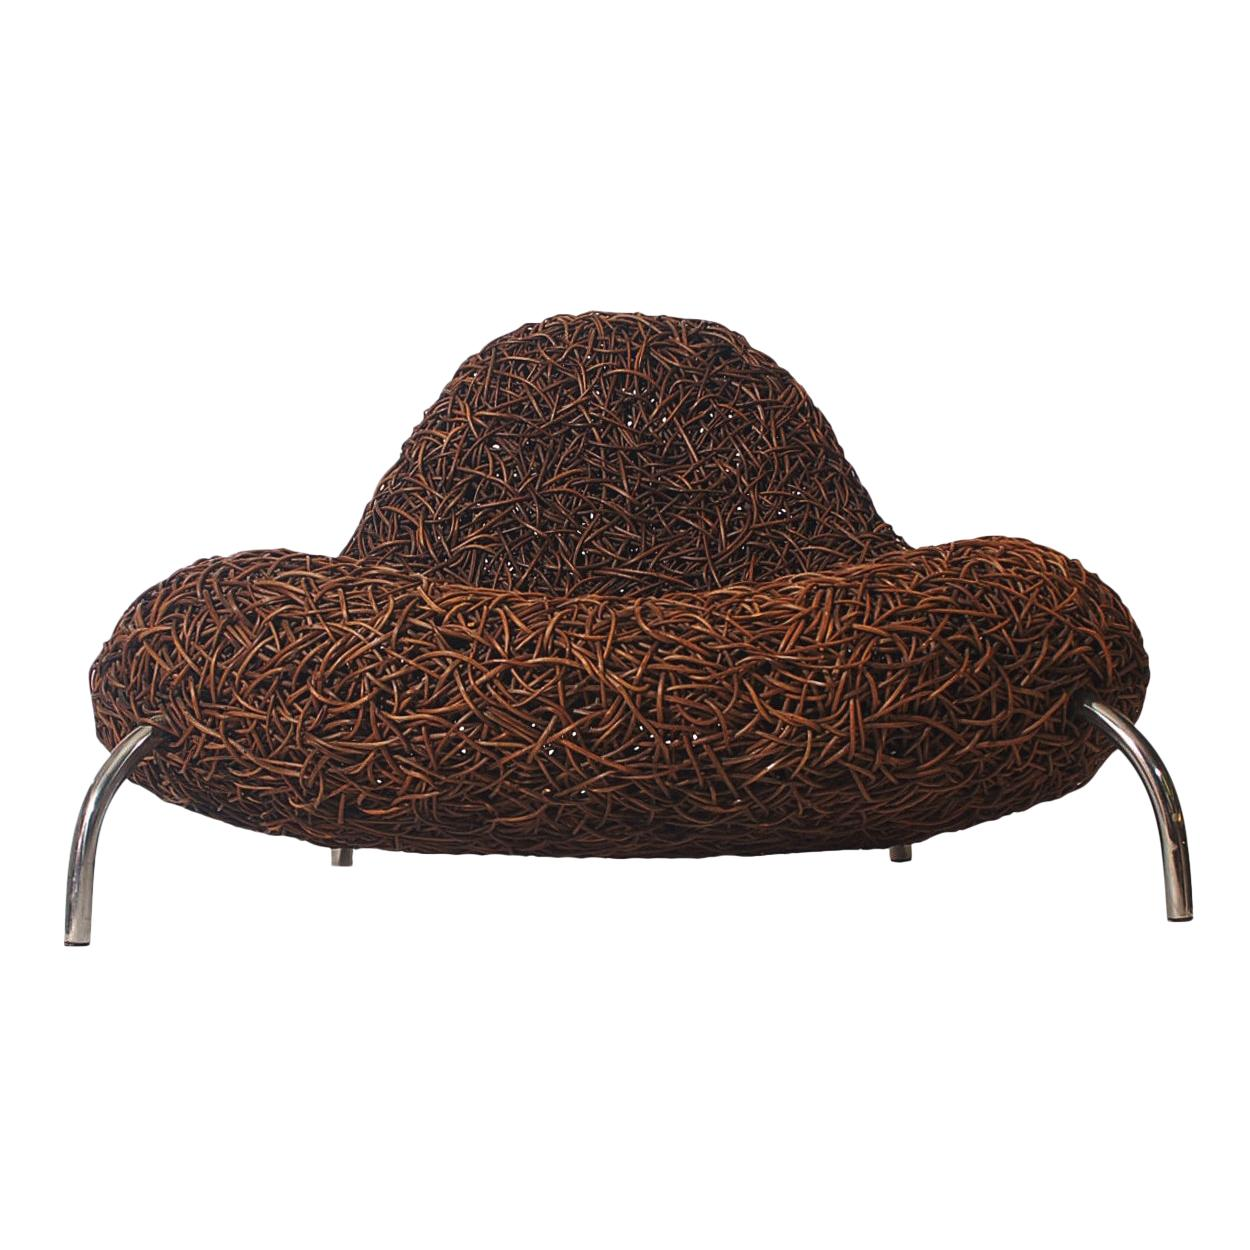 Postmodern Organic Rattan Lounge Chair by Udom Udomsrianan & Planet 2001